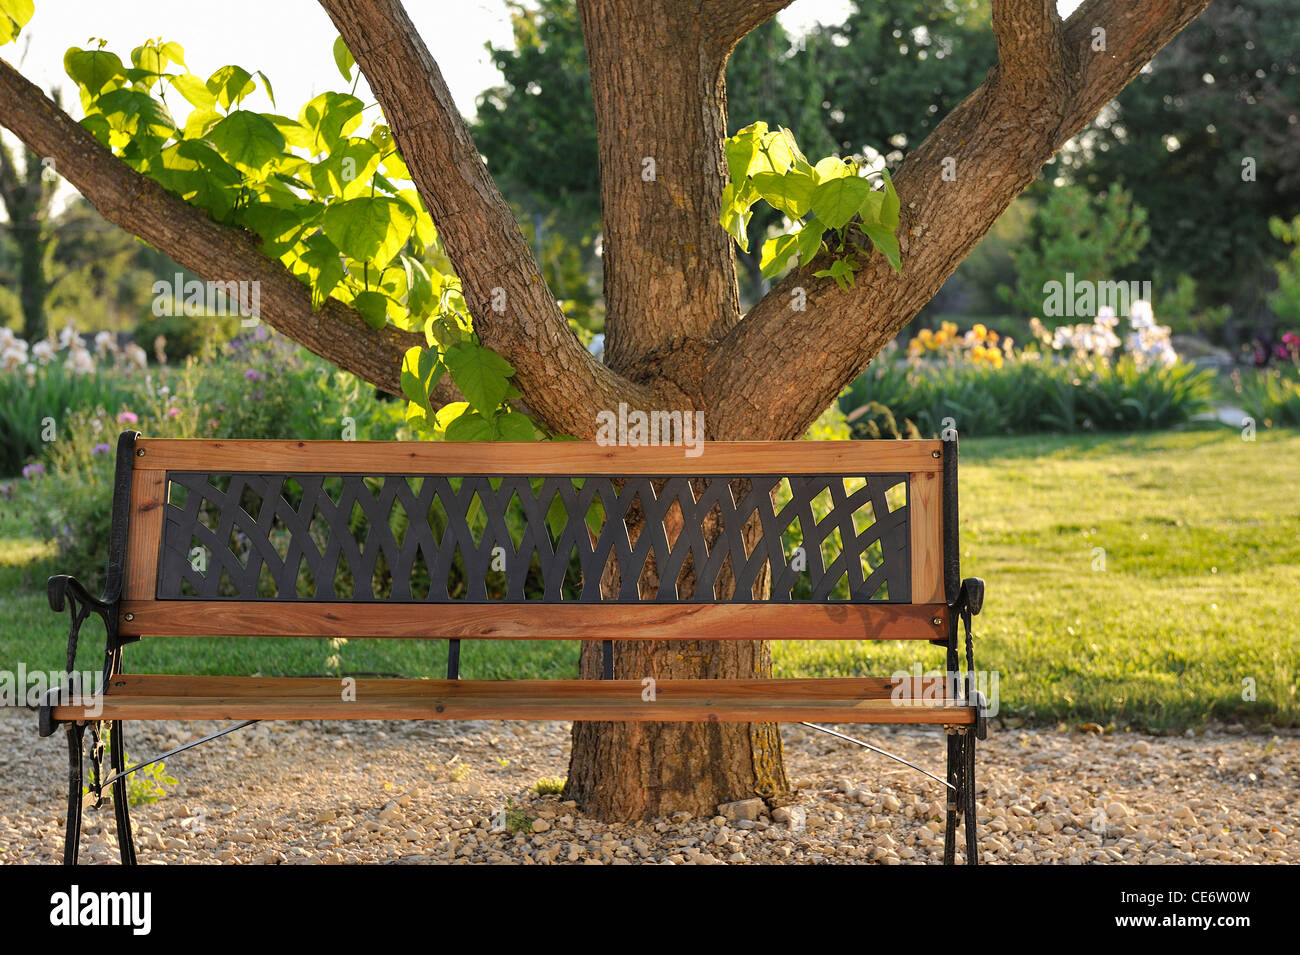 Wooden bench in a garden under a tree, Provence, France - Stock Image